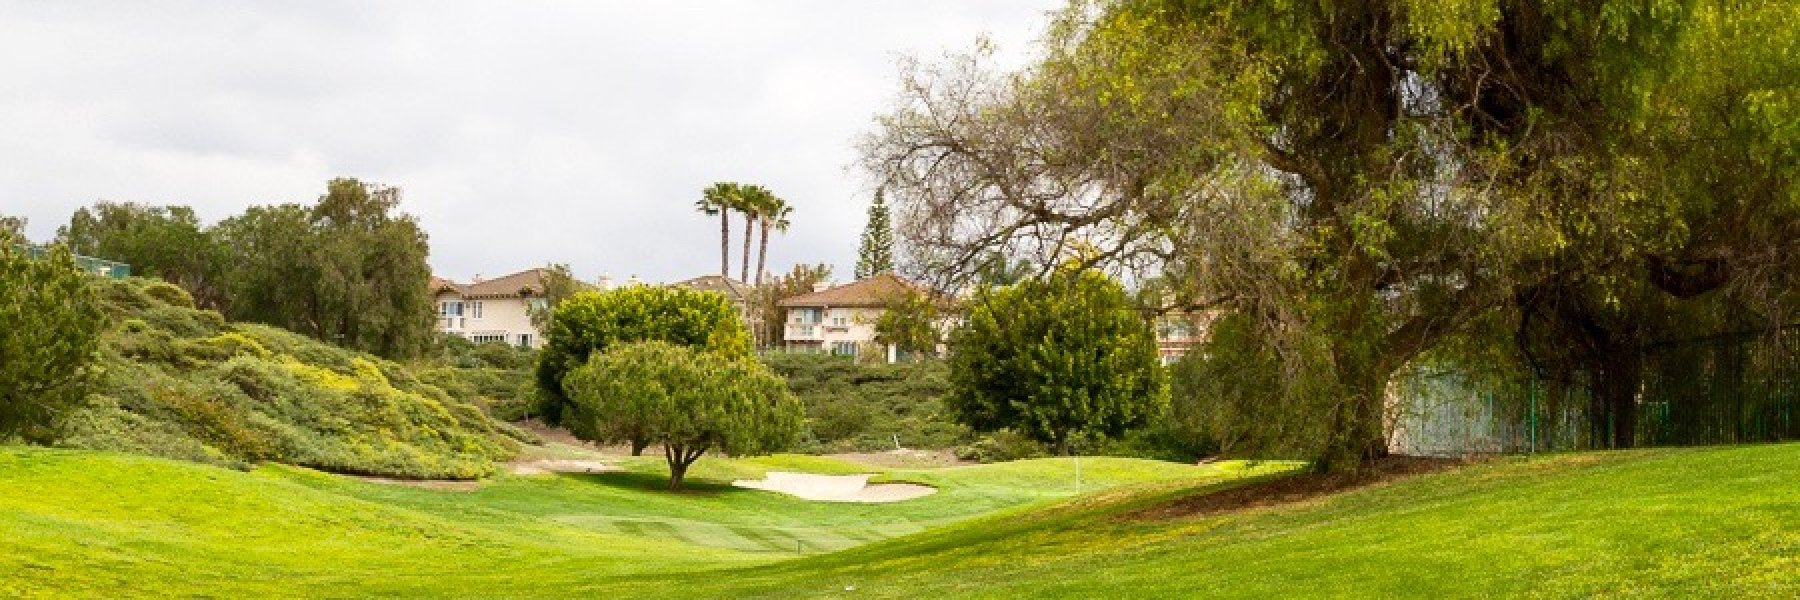 Eastlake Greens is a community of homes In Chula Vista